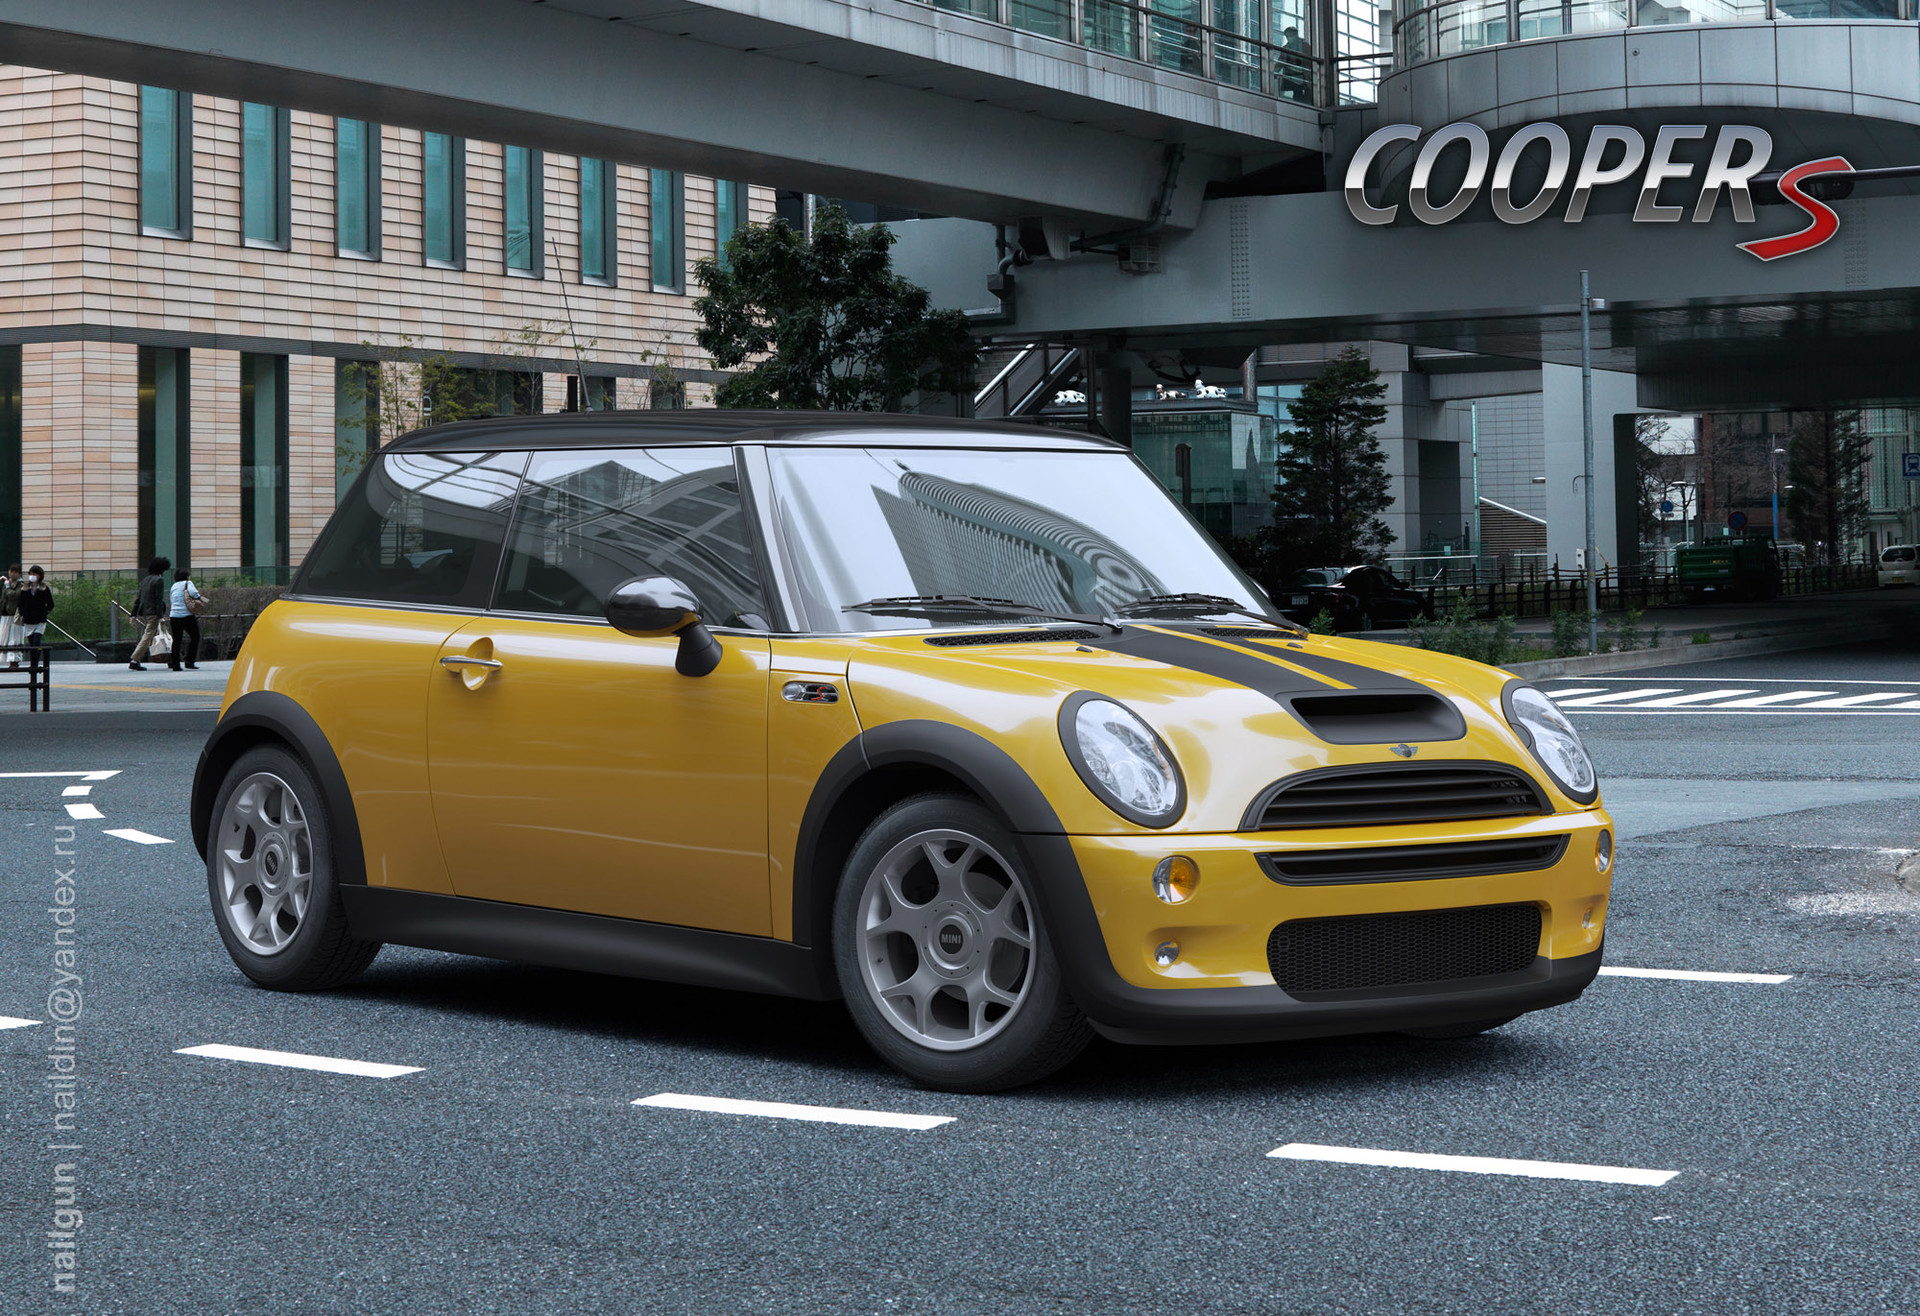 Nail khusnutdinov pwc 040 010 mini coopers 03 central page 3x